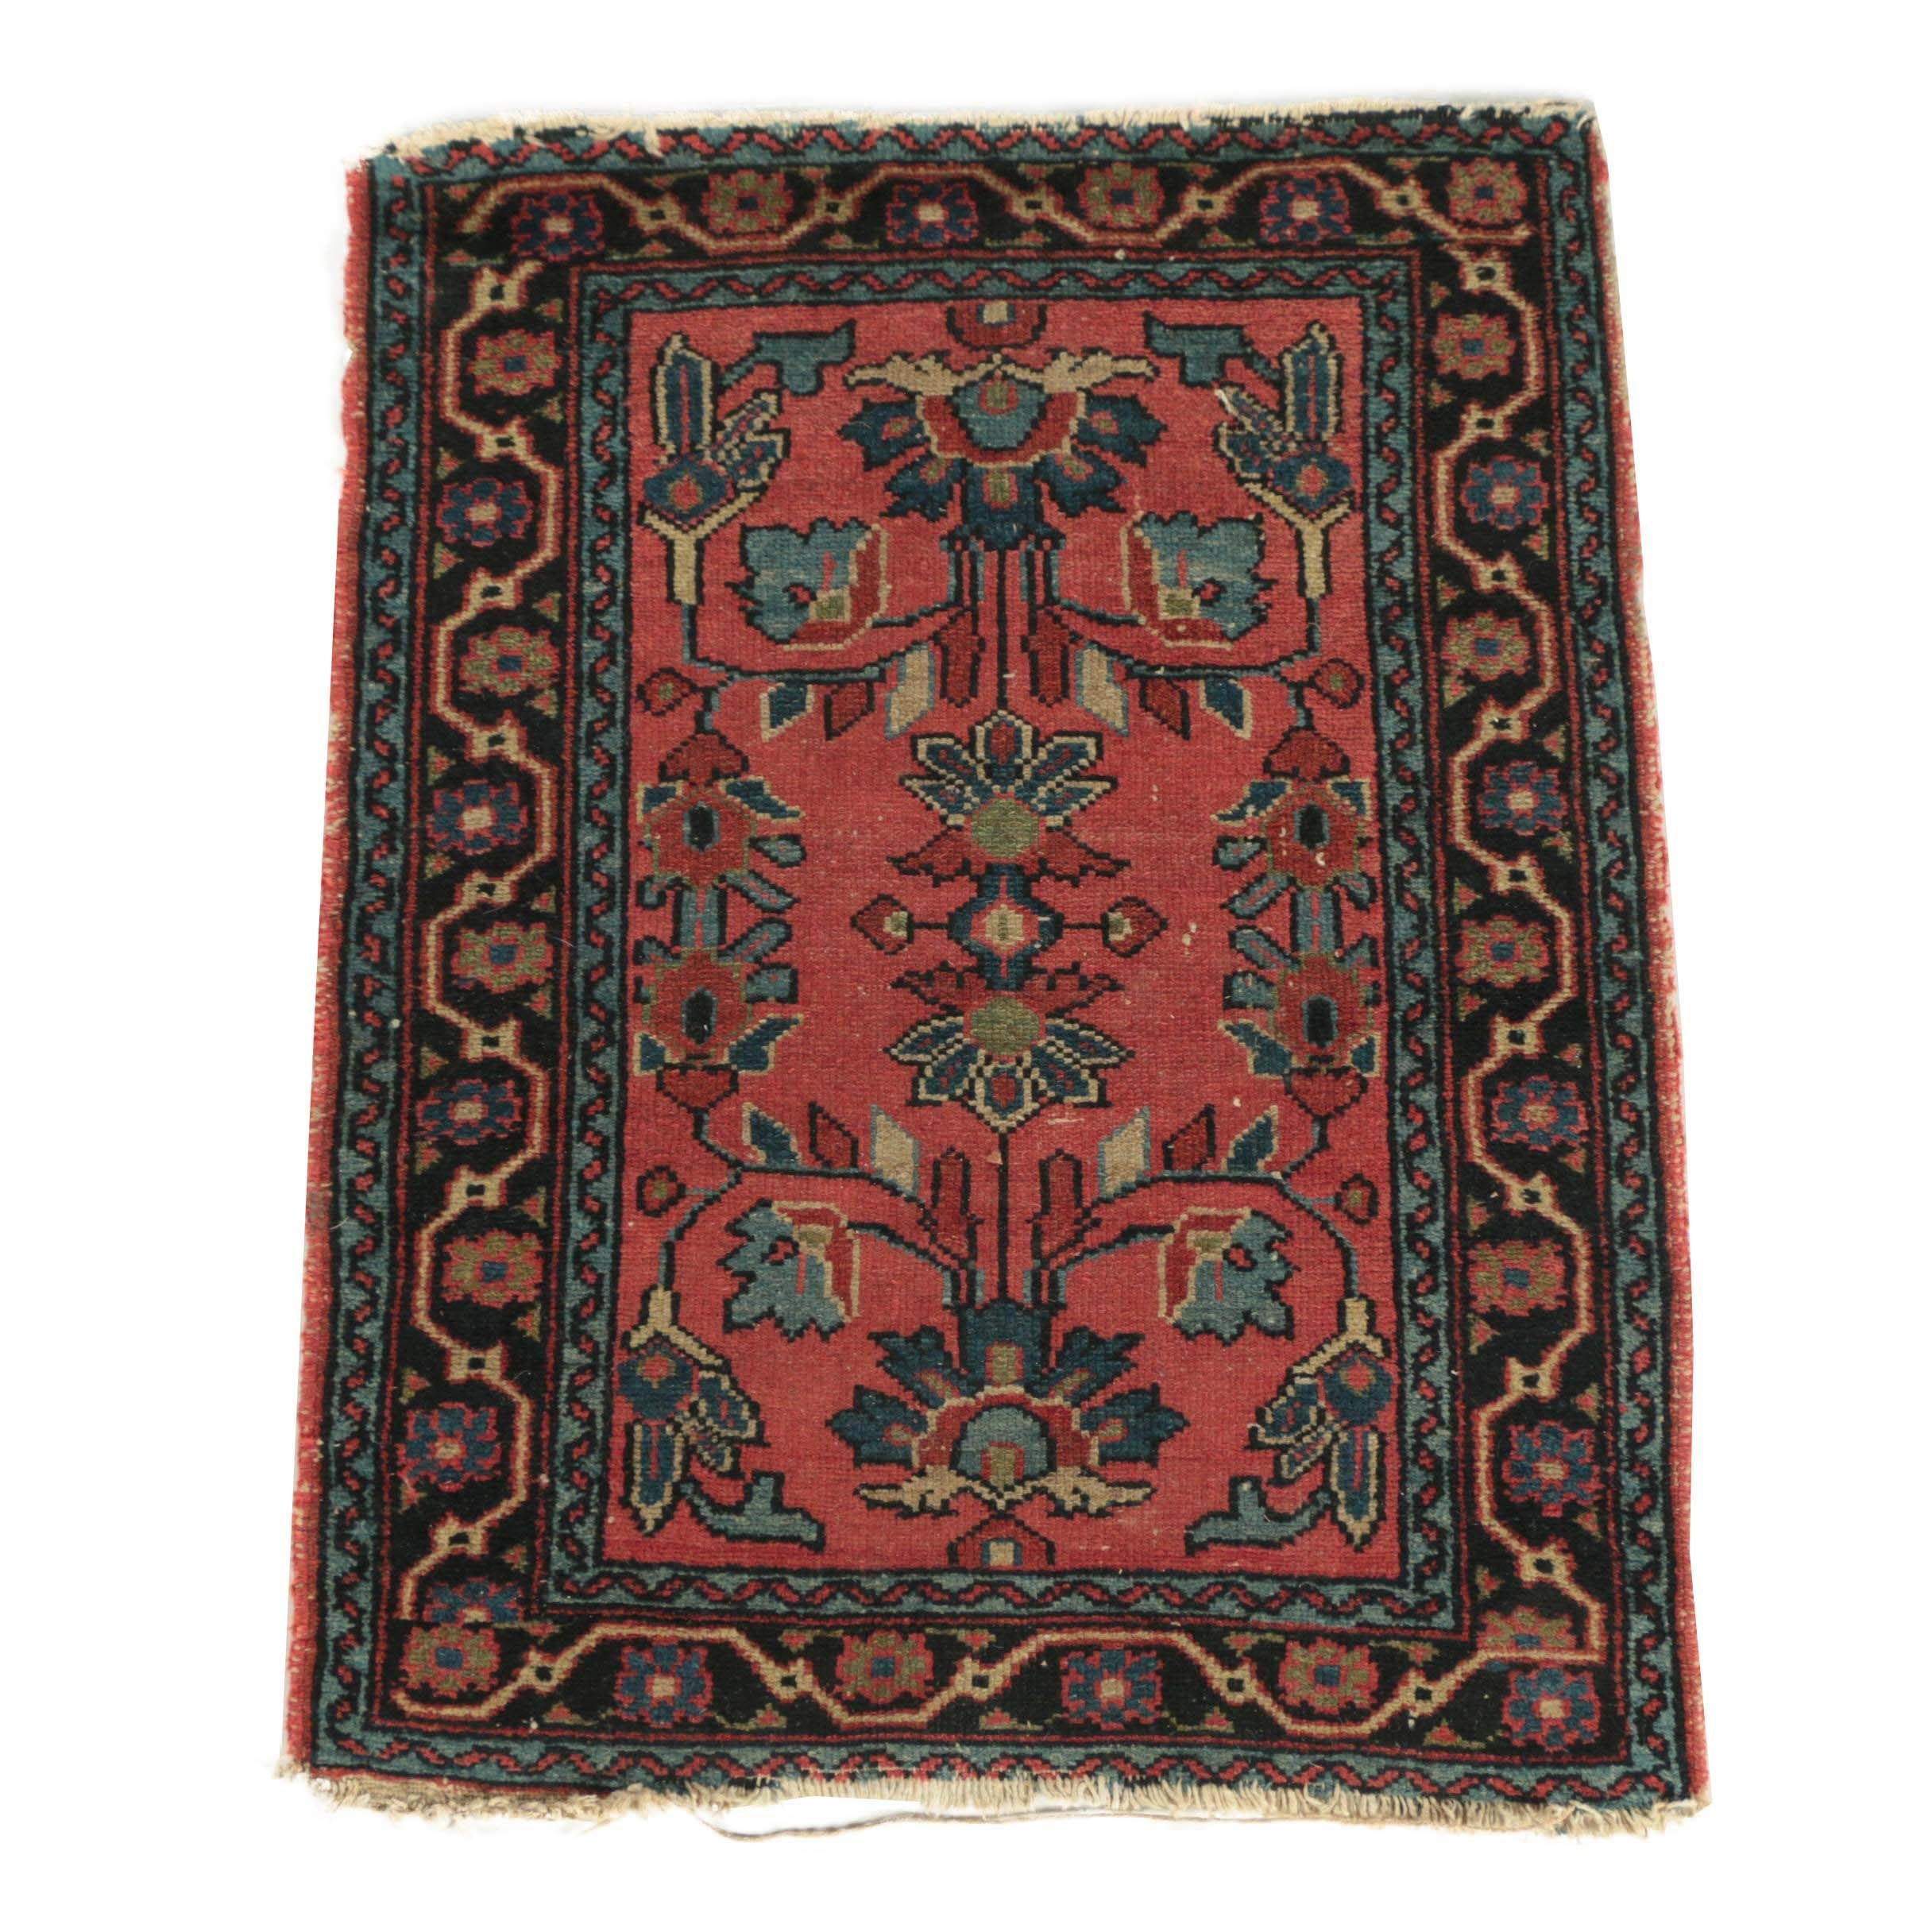 Semi-Antique Hand-Knotted Persian Wool Rug